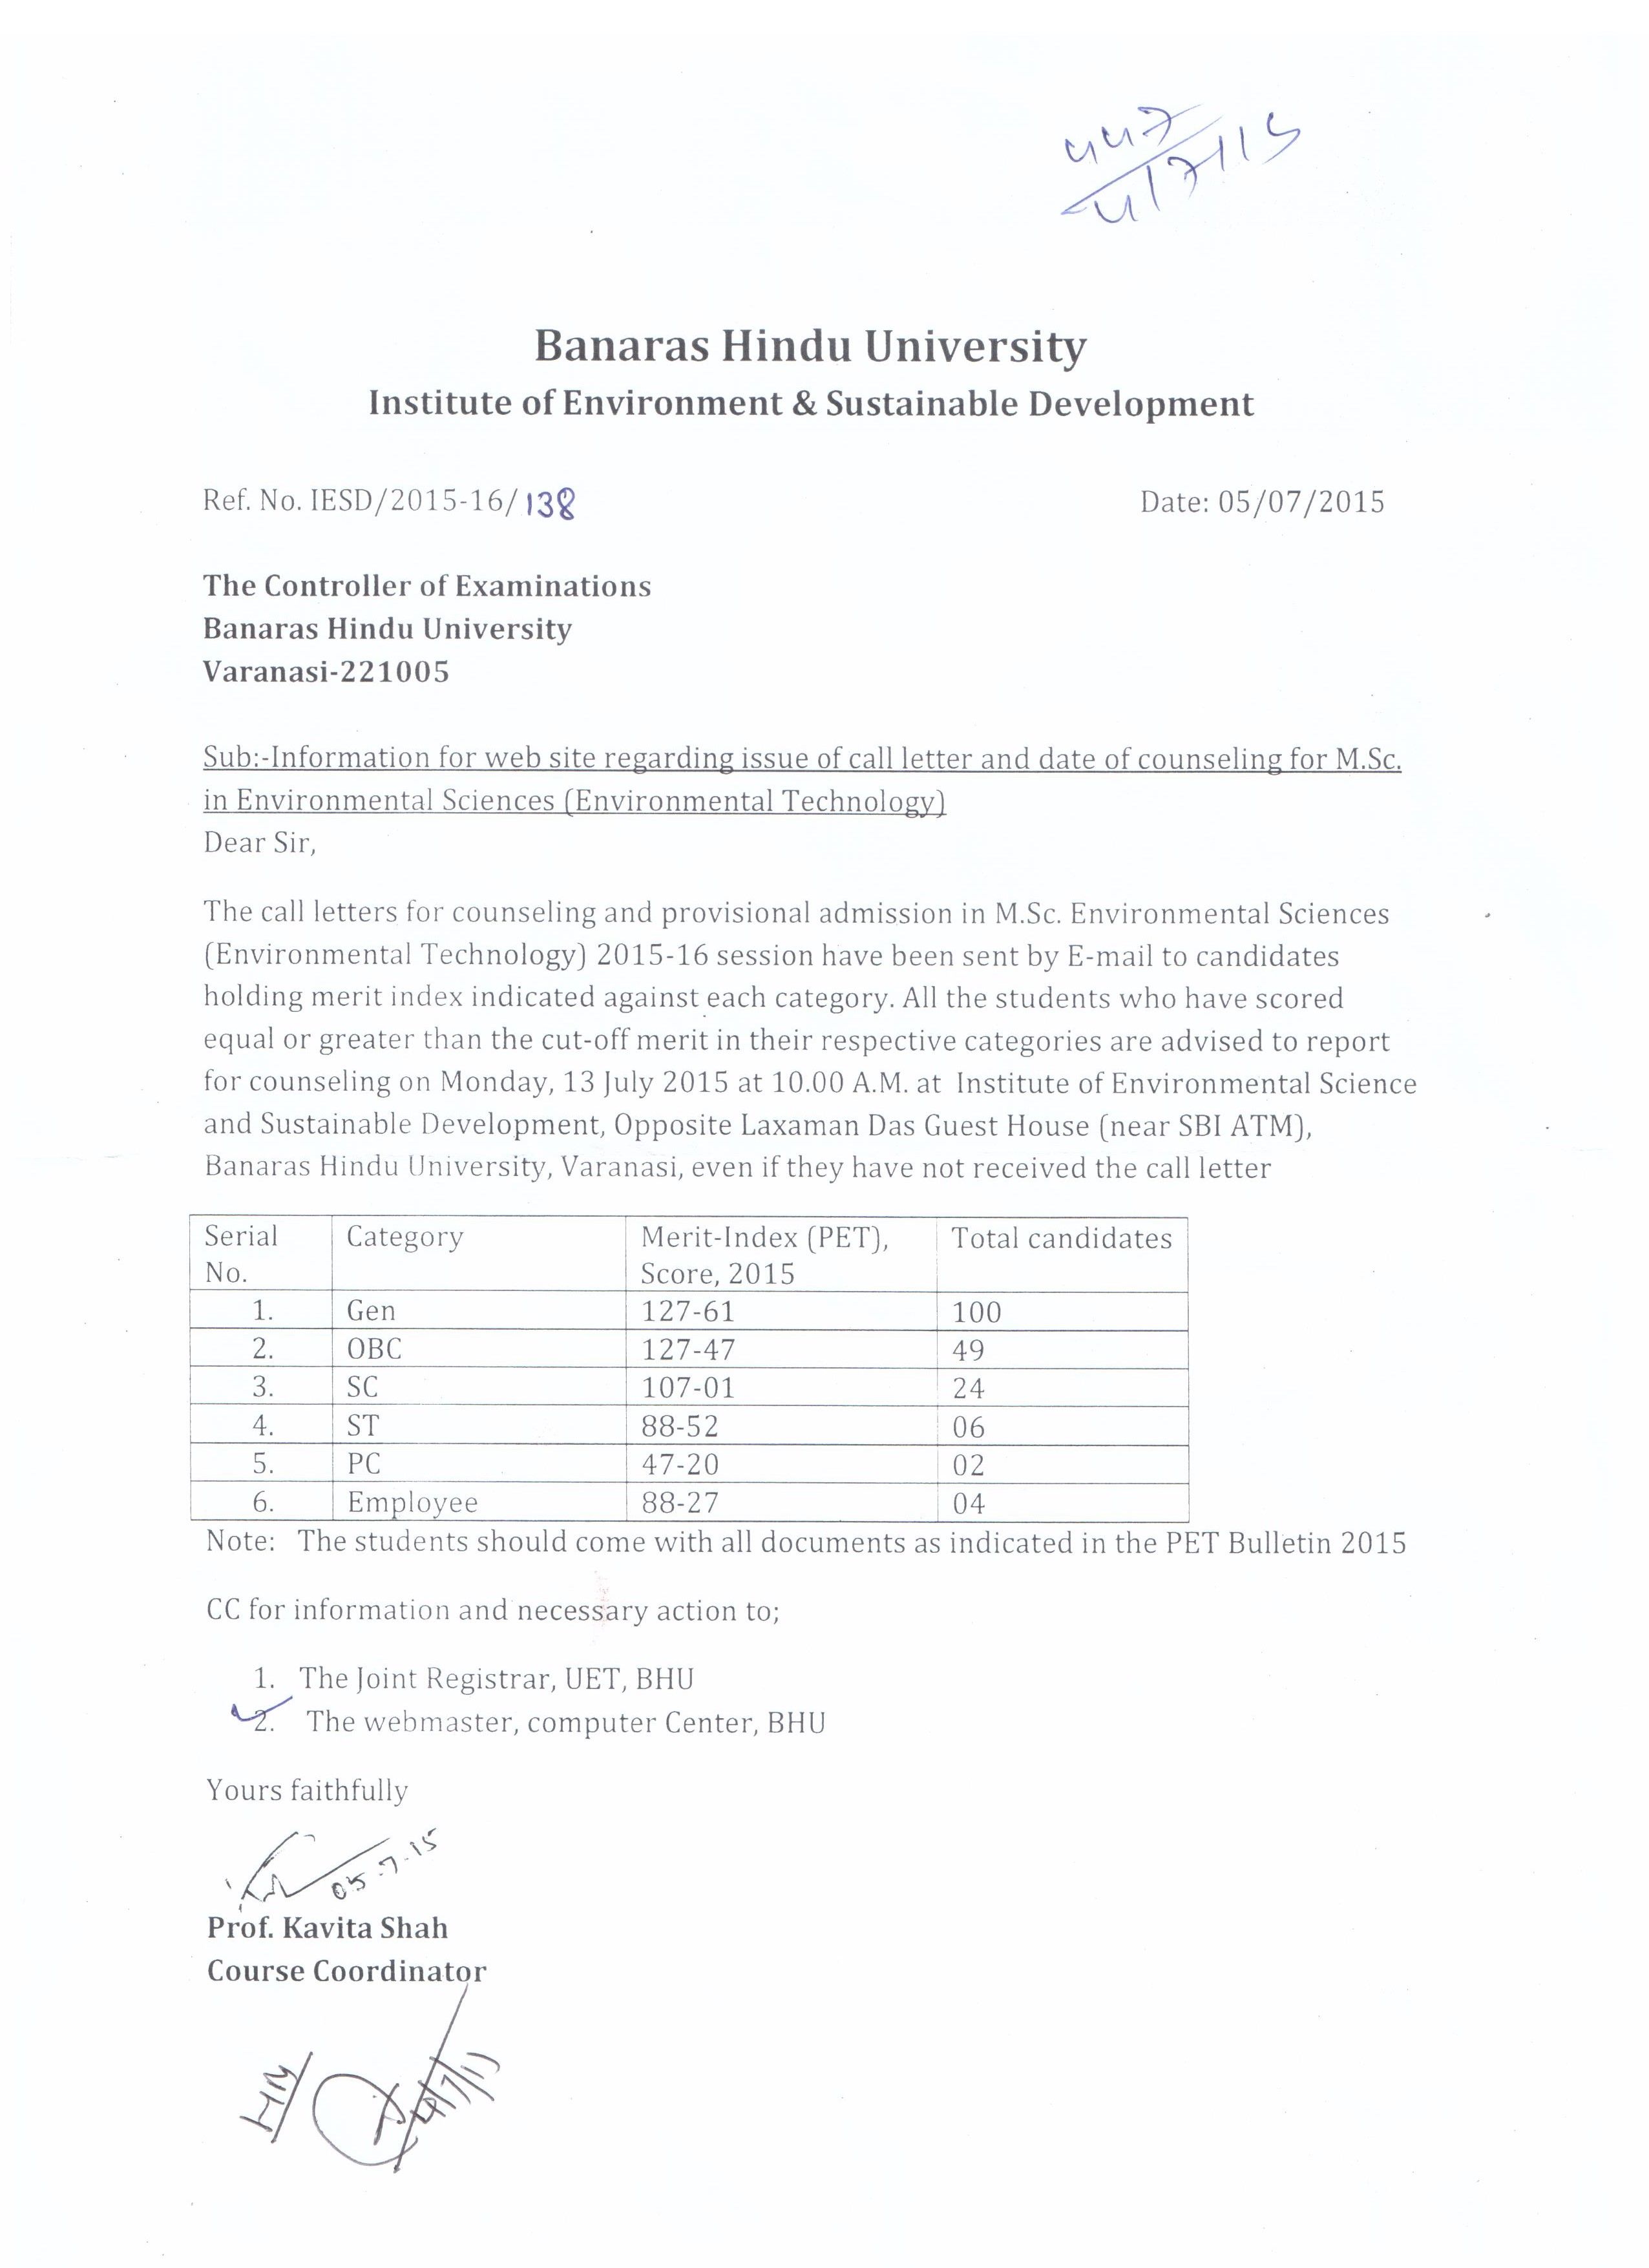 Banaras Hindu University, Faculty of Science, Department of Botany